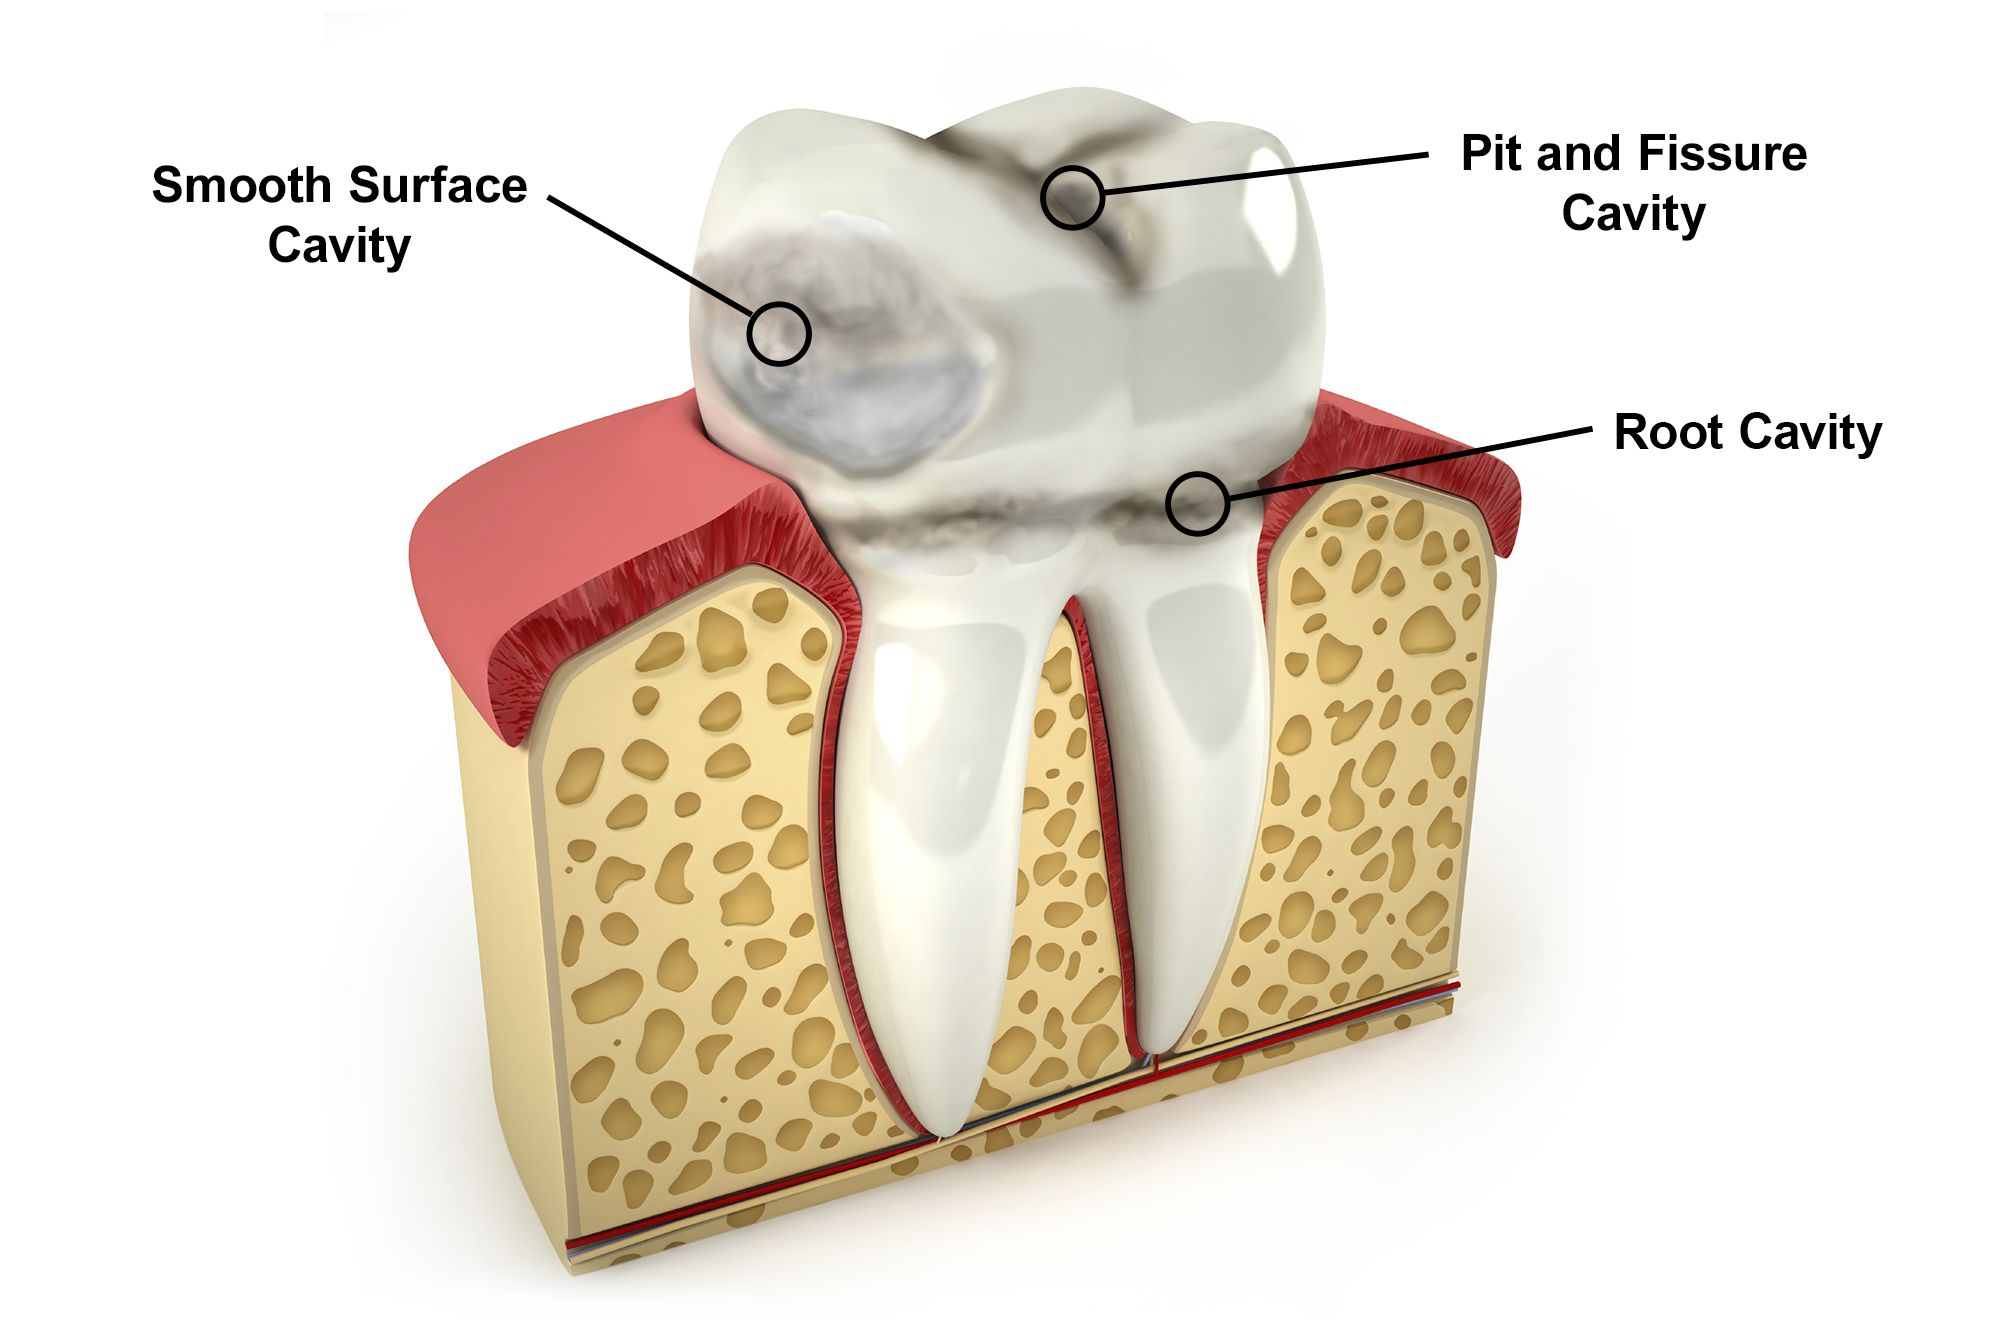 Types of Cavities